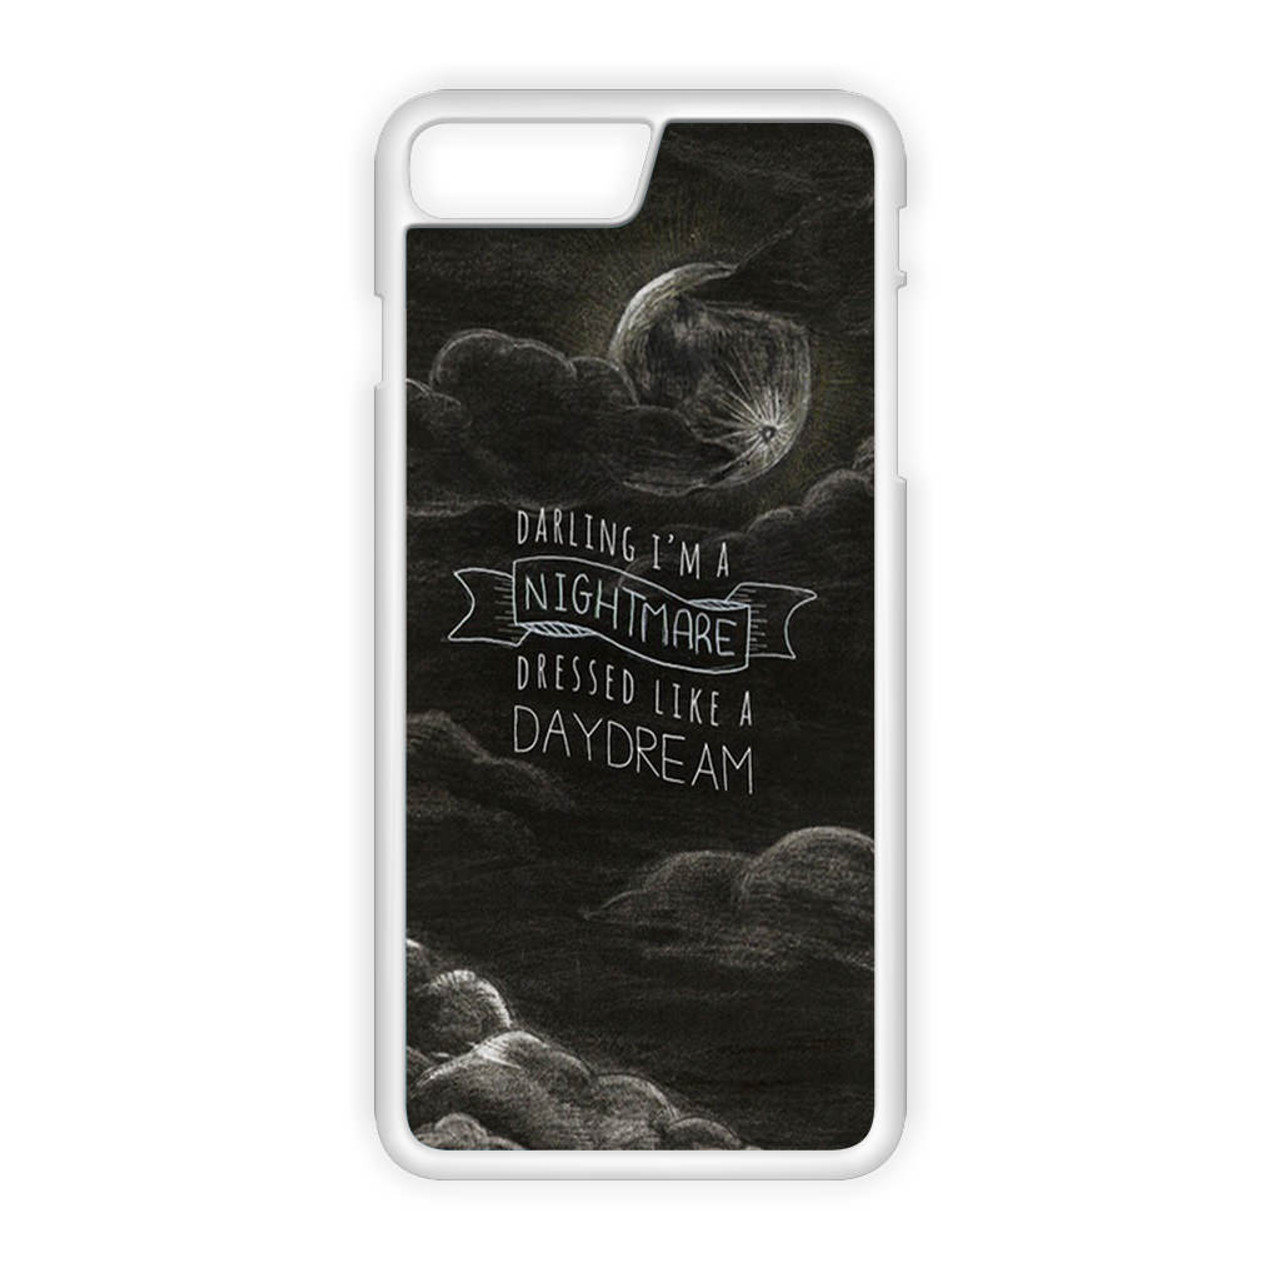 Taylor Swift Blank Space iphone case